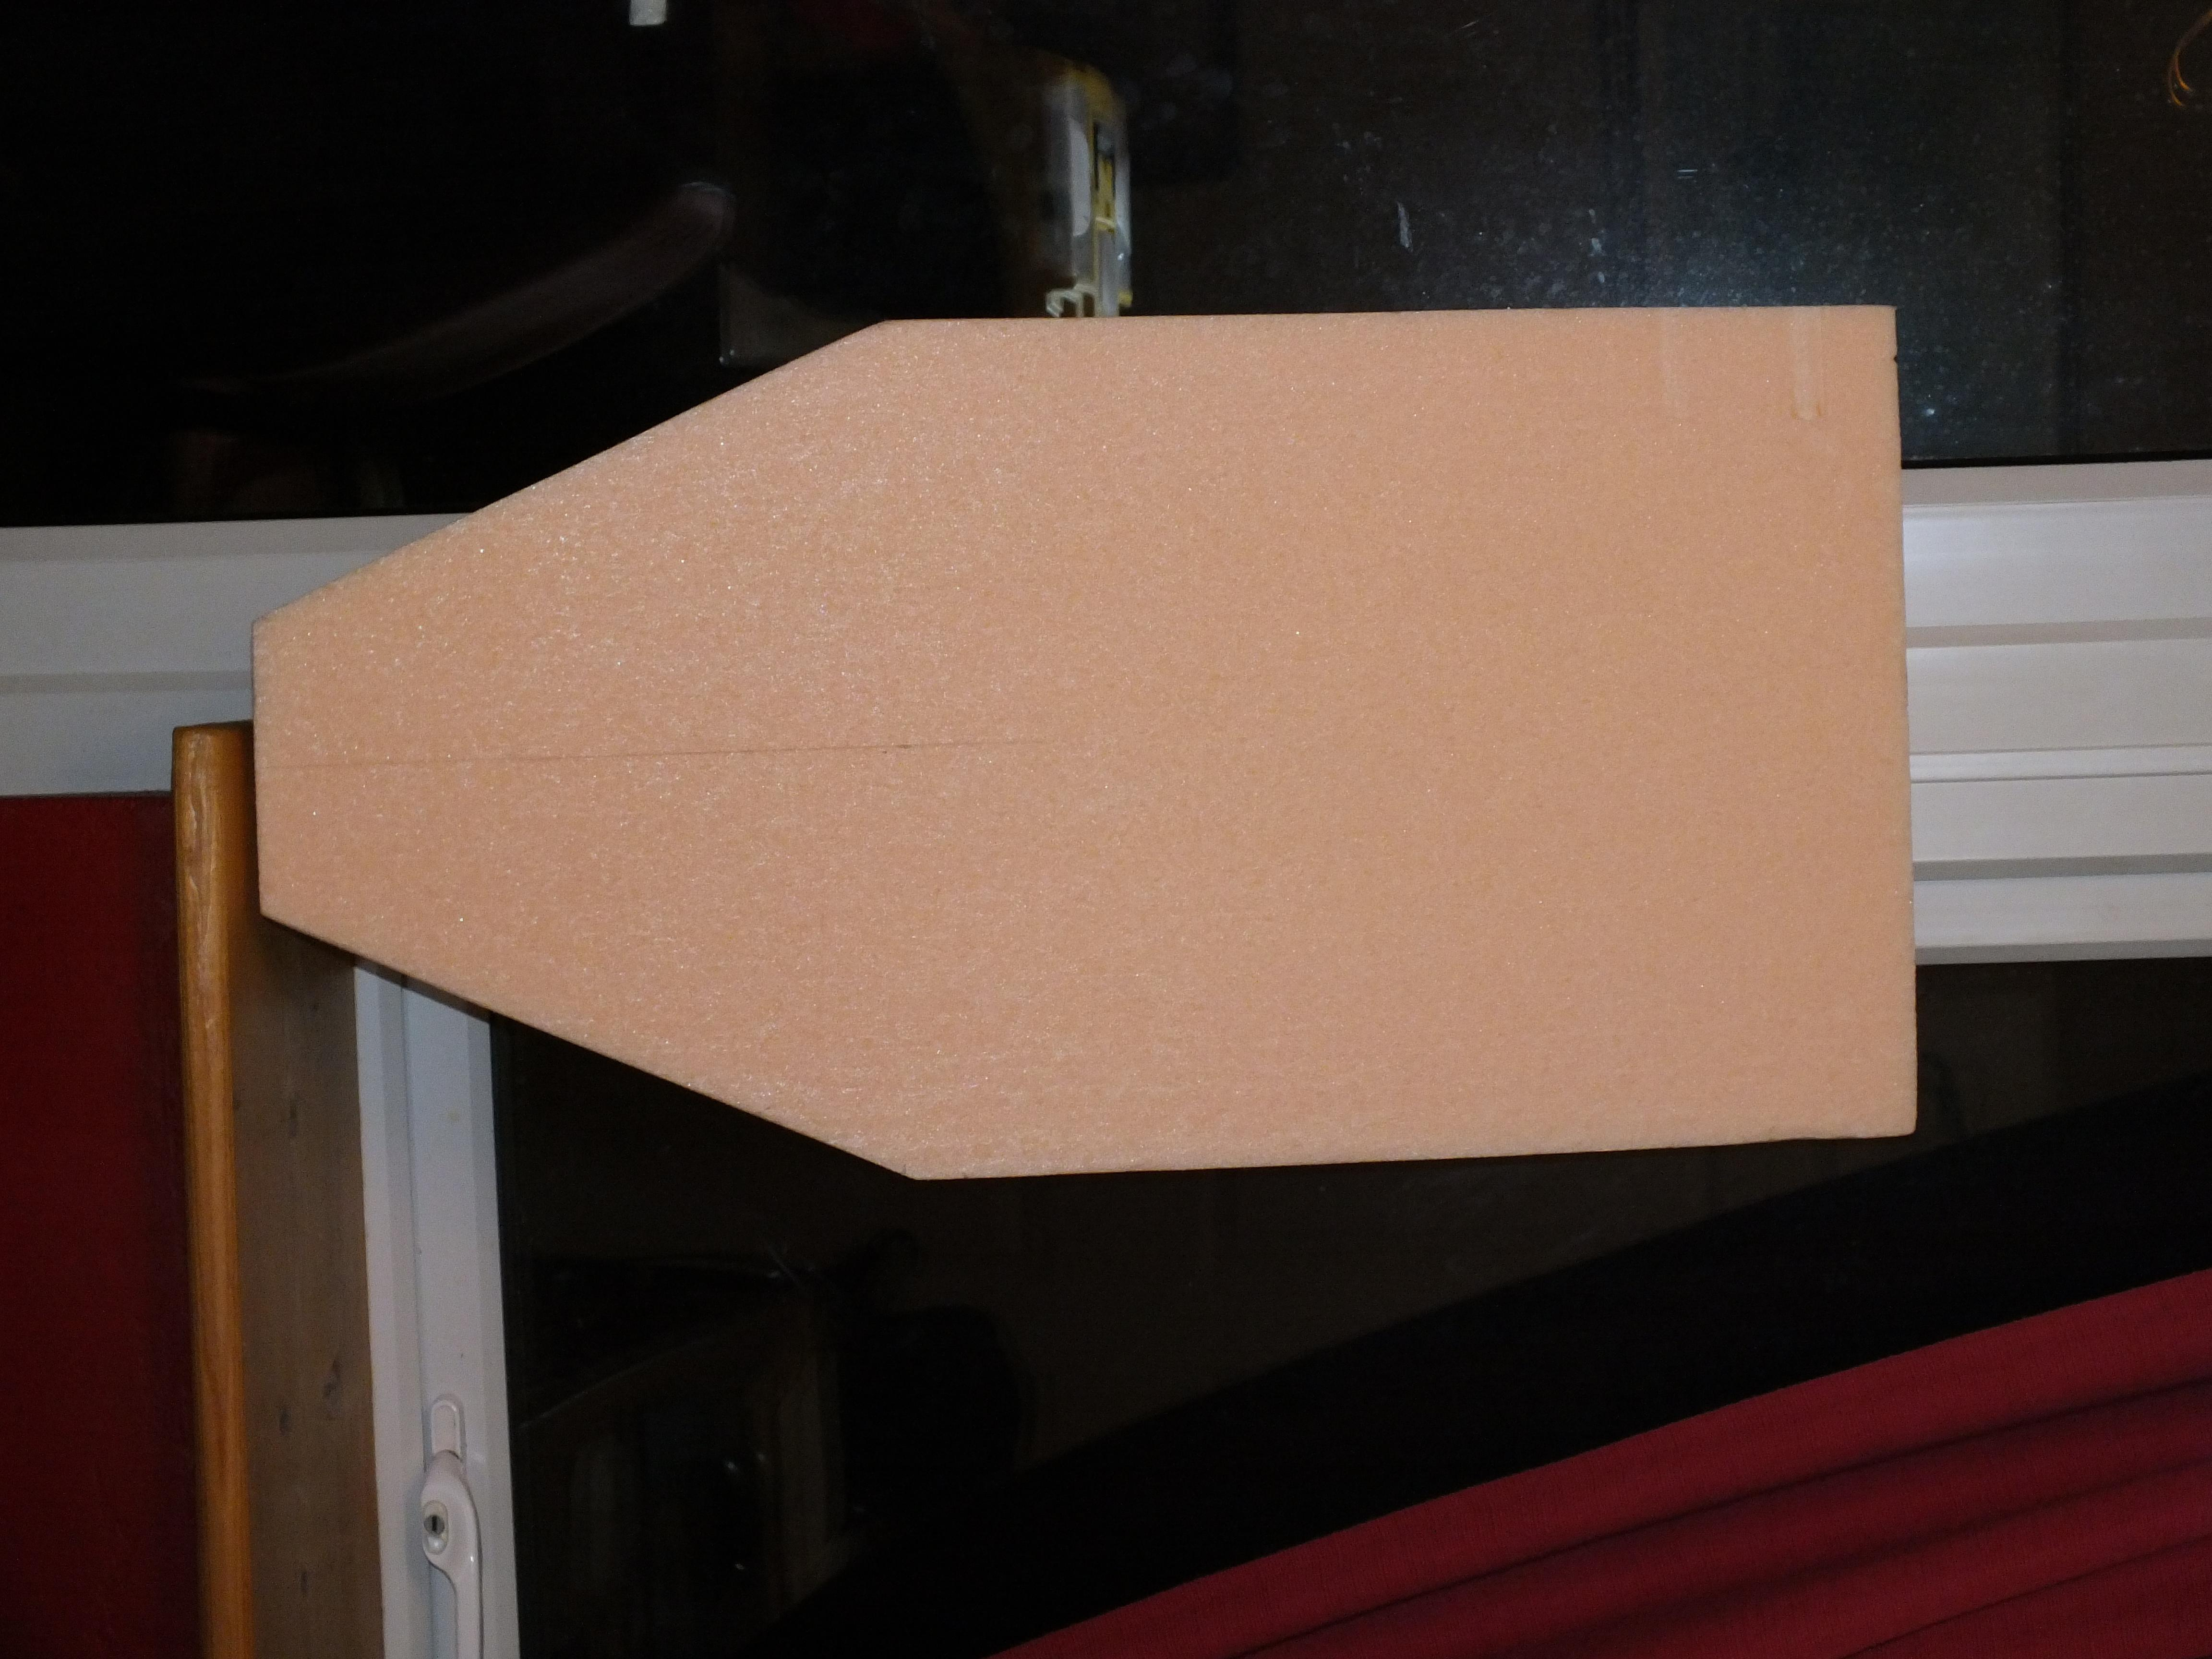 Starts of with a cut out base section